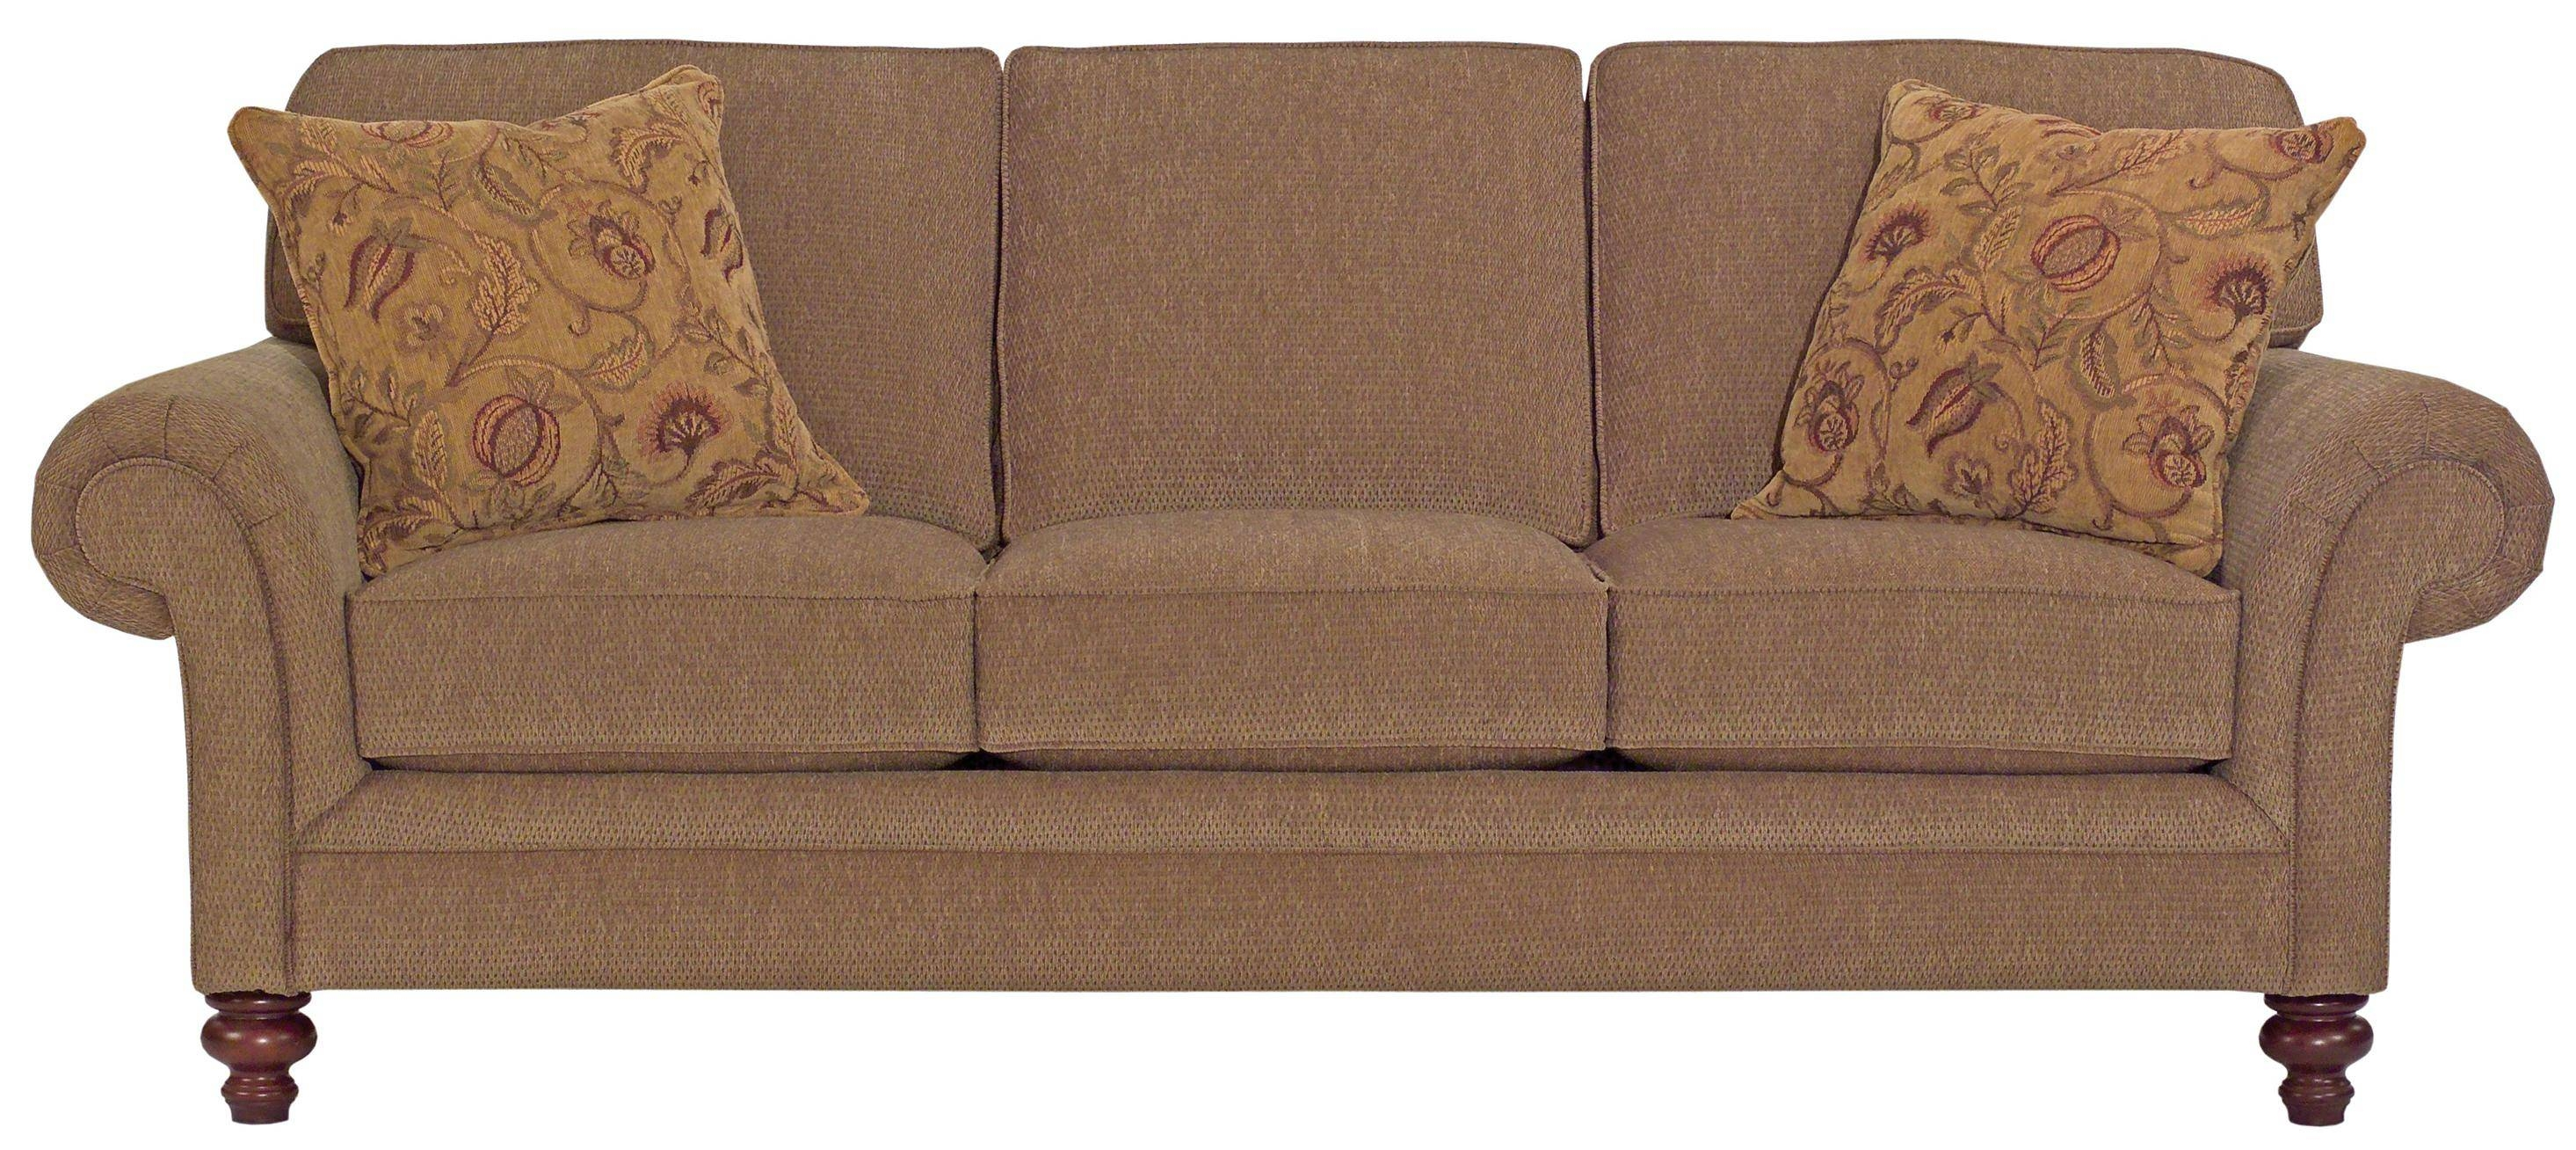 Broyhill Furniture Larissa Queen Goodnight Sleeper Sofa   Value With Regard To Broyhill Larissa Sofas (Photo 6 of 15)